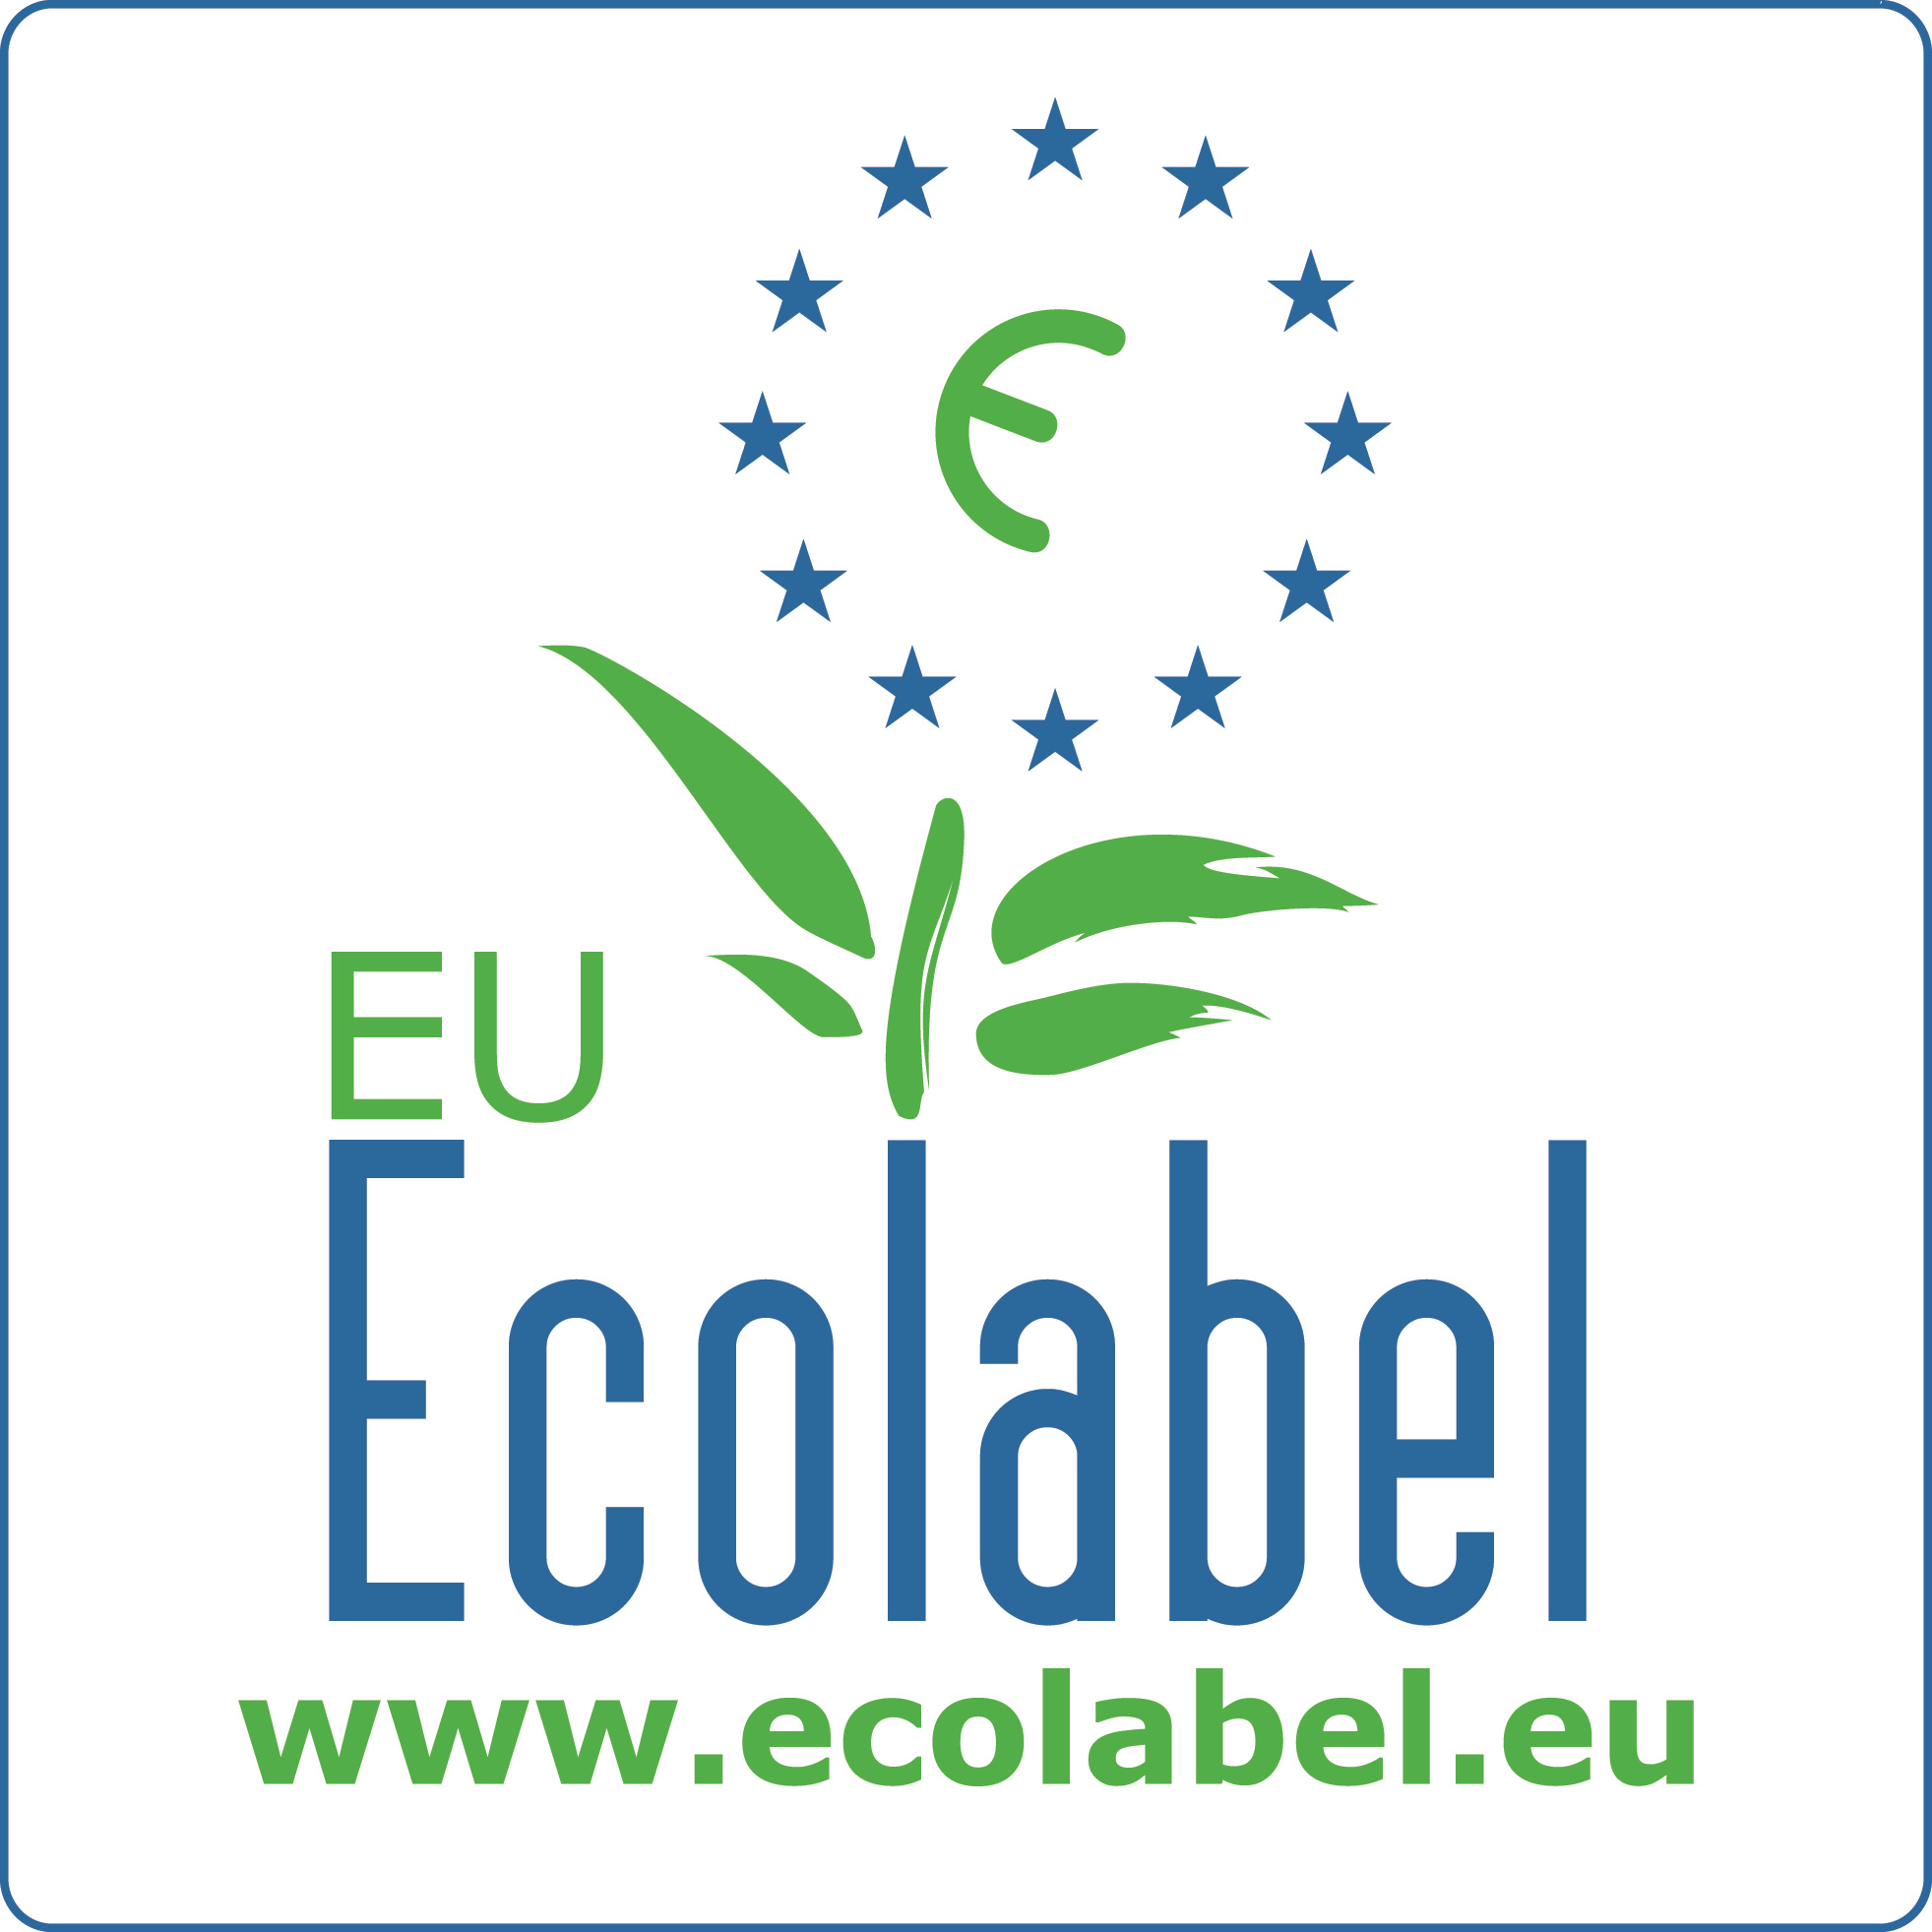 label ecolabel